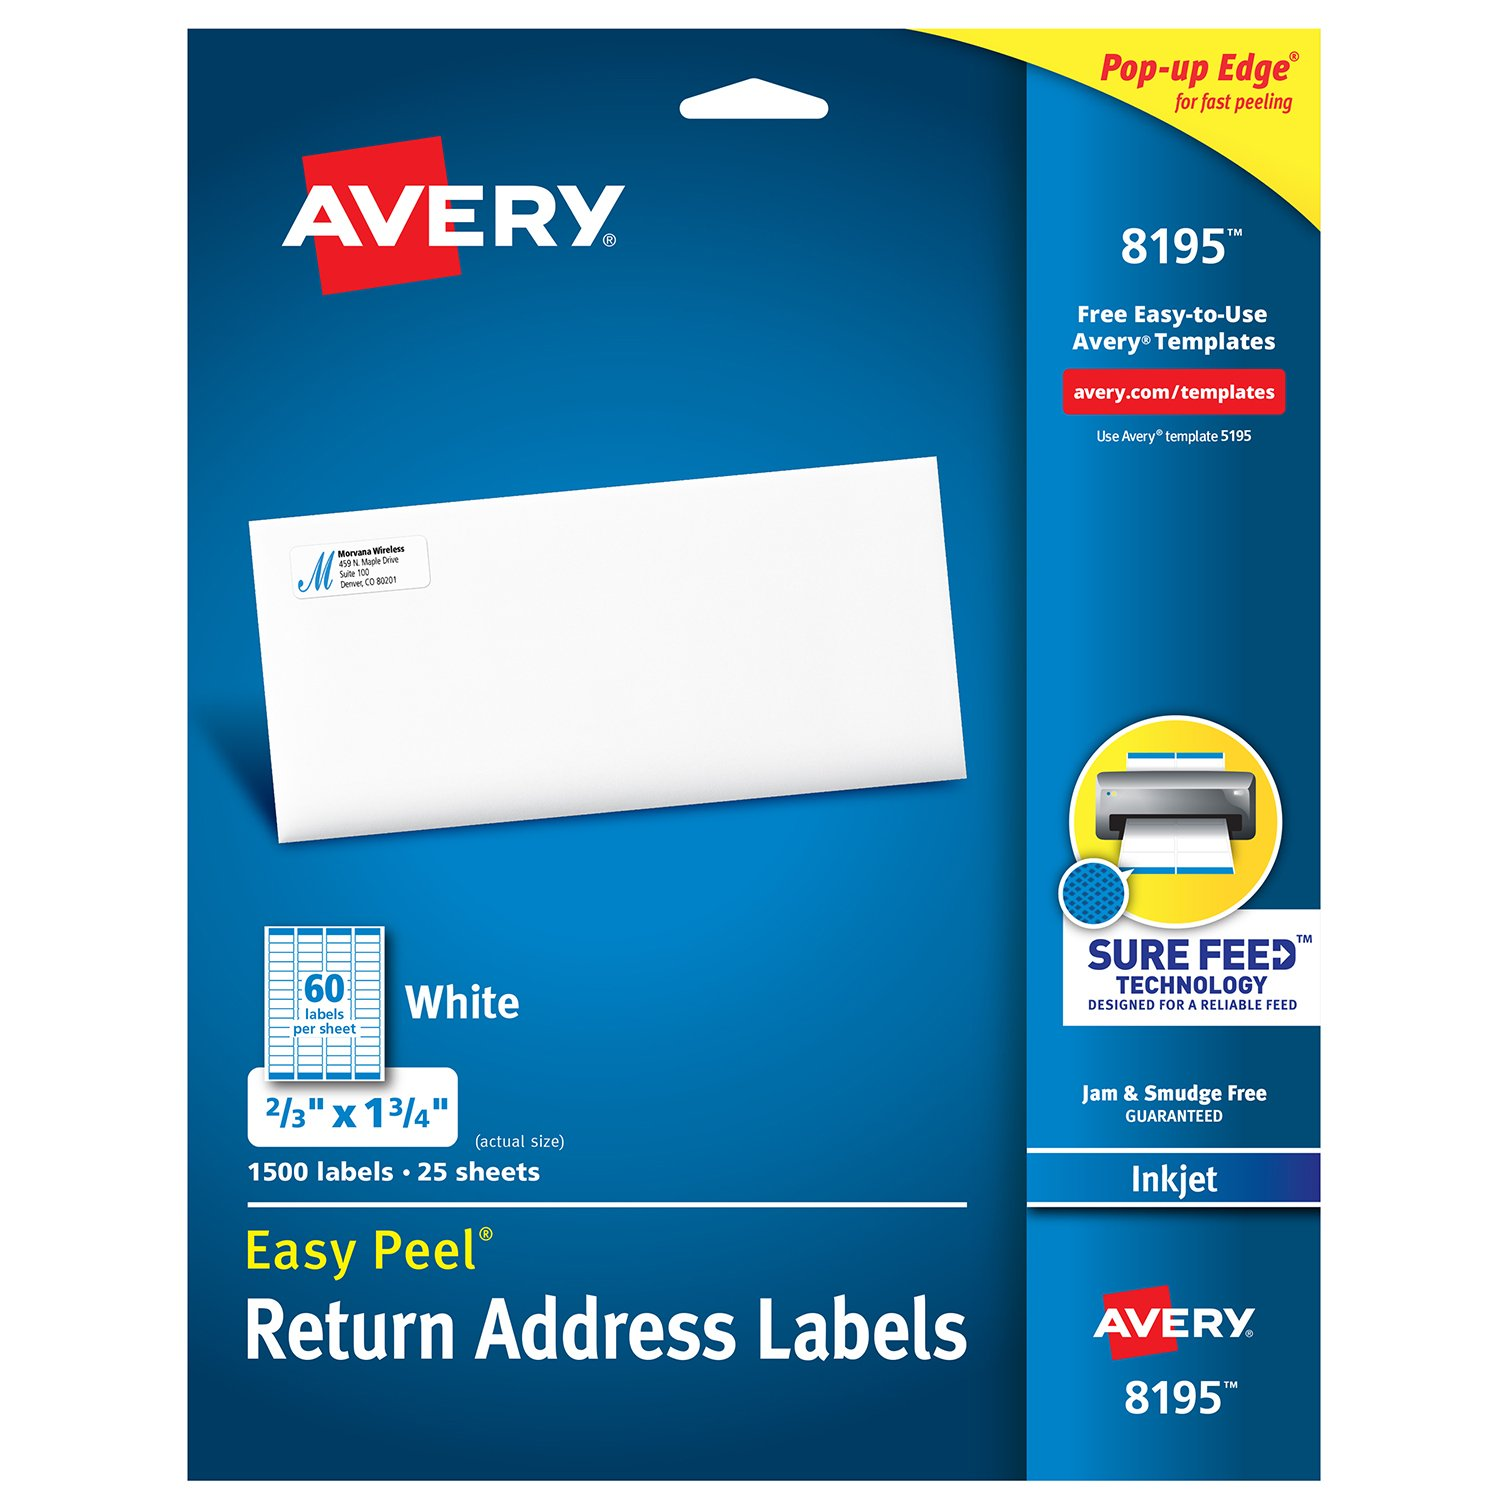 Avery Return Address Labels with Sure Feed for Inkjet Printers, 2/3'' x 1-3/4'', 1,500 Labels, Permanent Adhesive (8195)